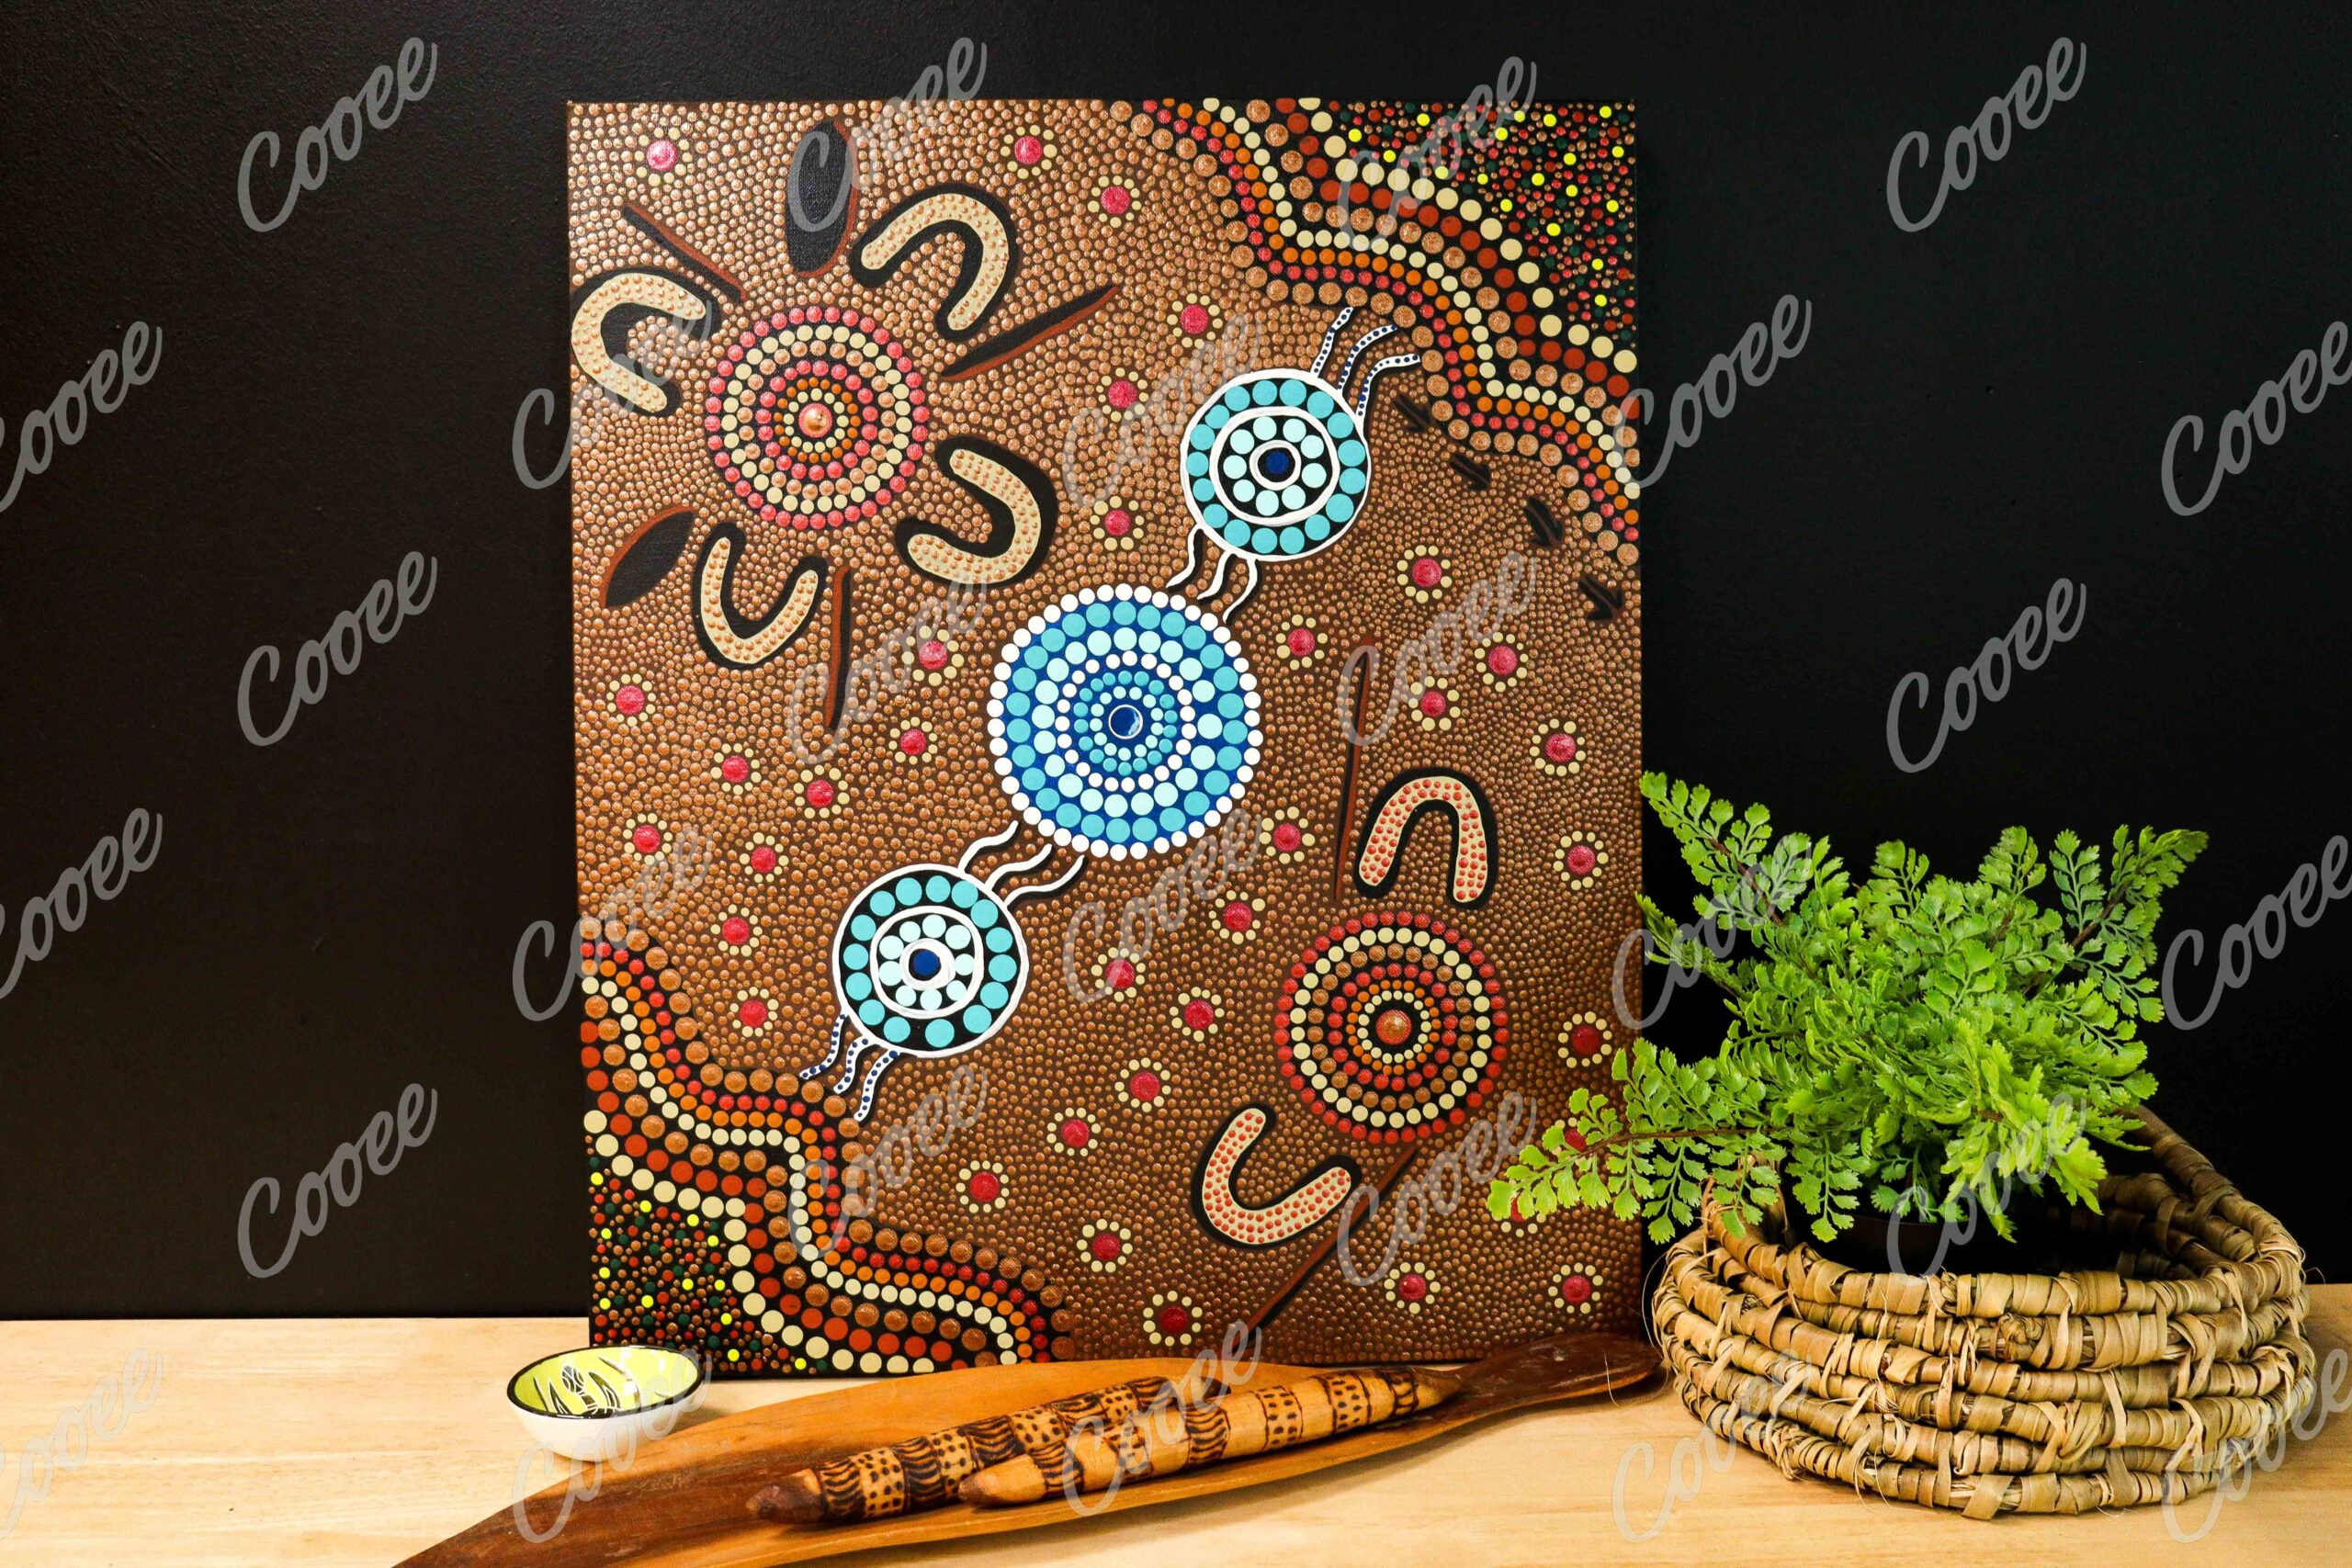 Cooee-Cafe-Original-Indigenous-Painting32